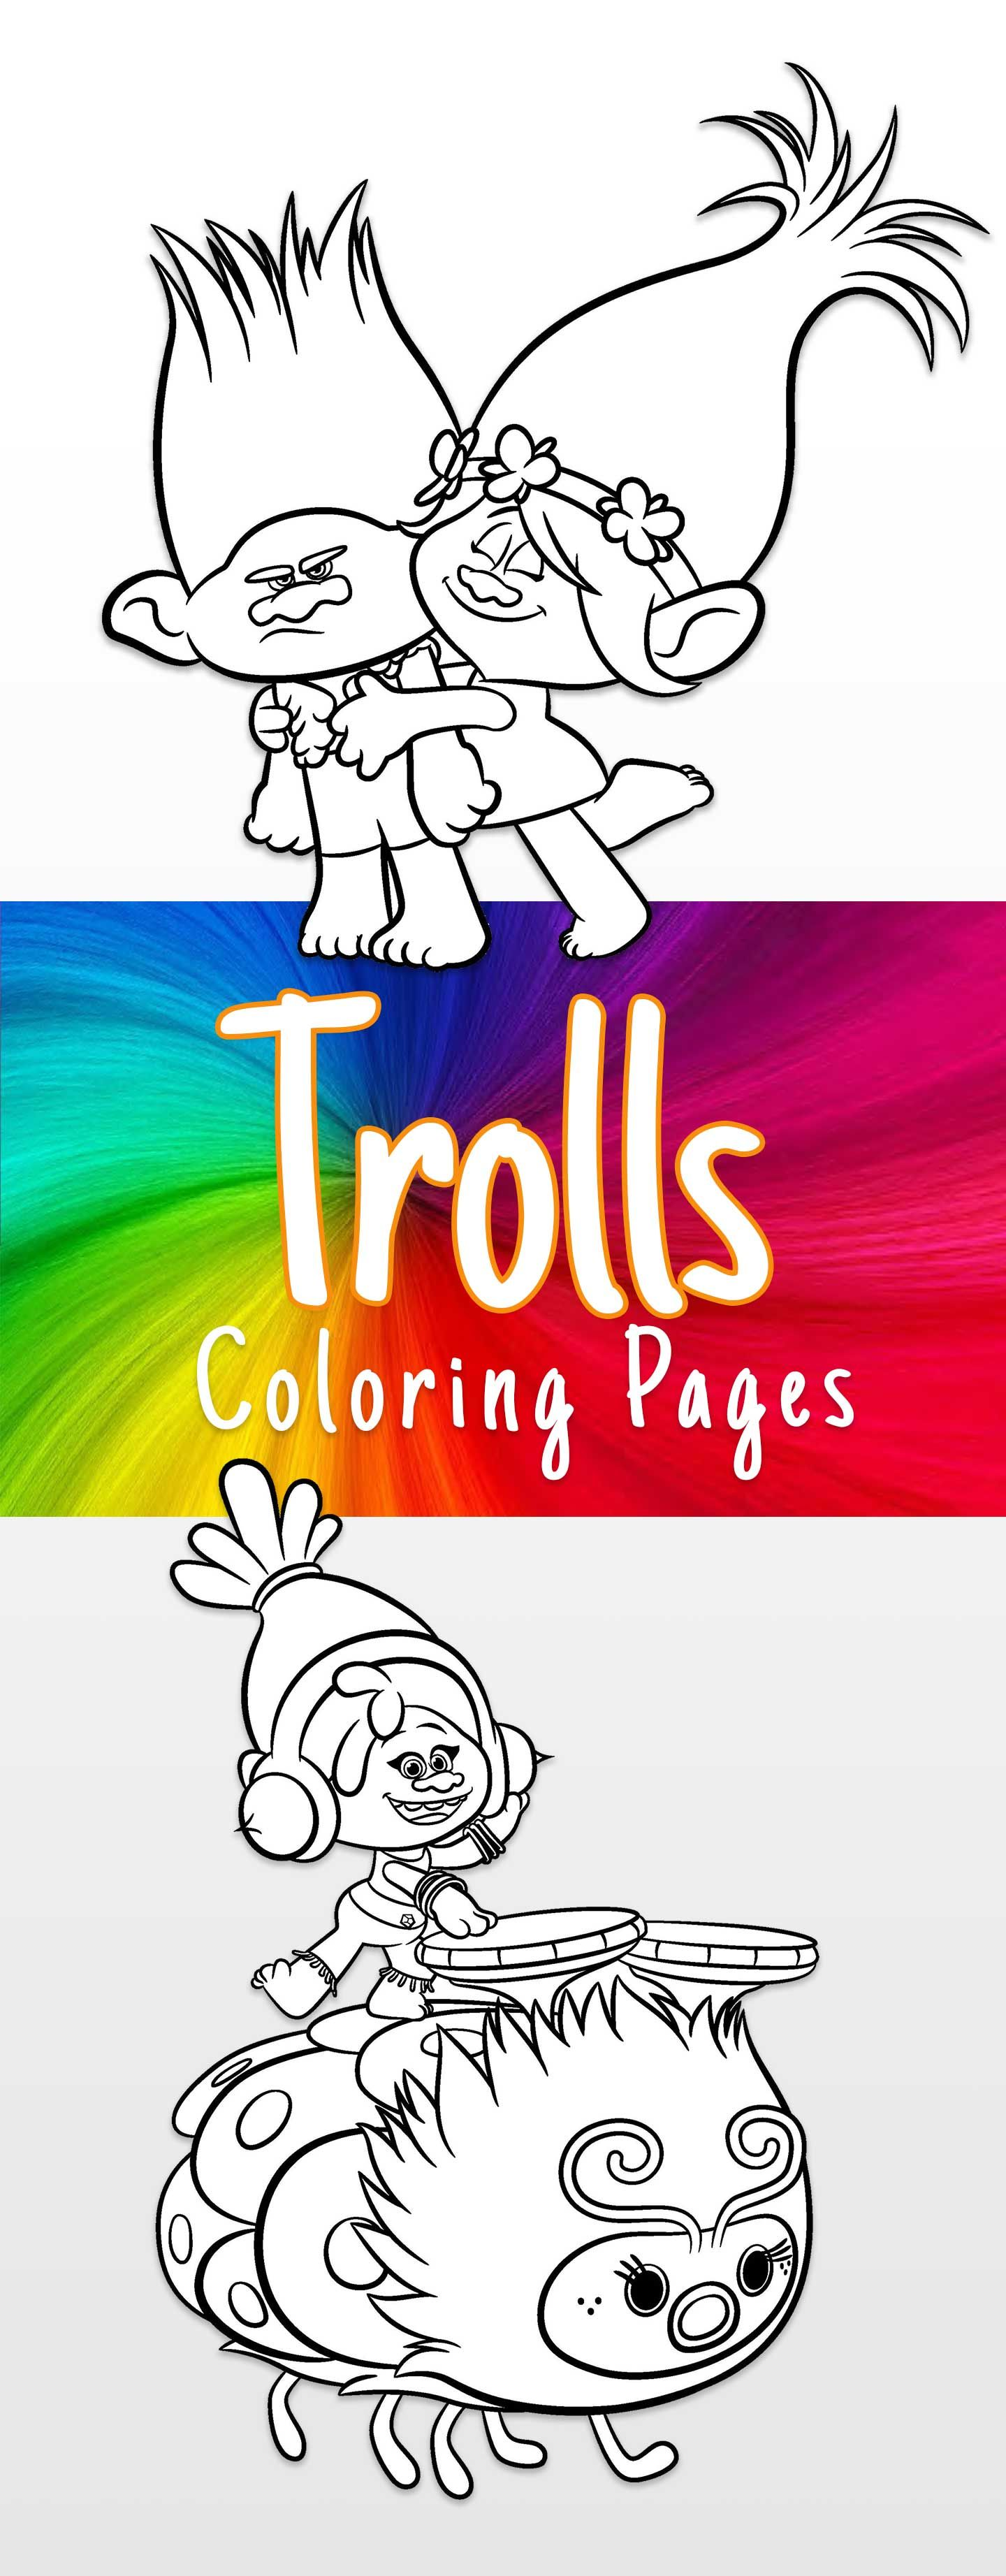 Trolls coloring sheets and printable activity sheets | Pinterest ...